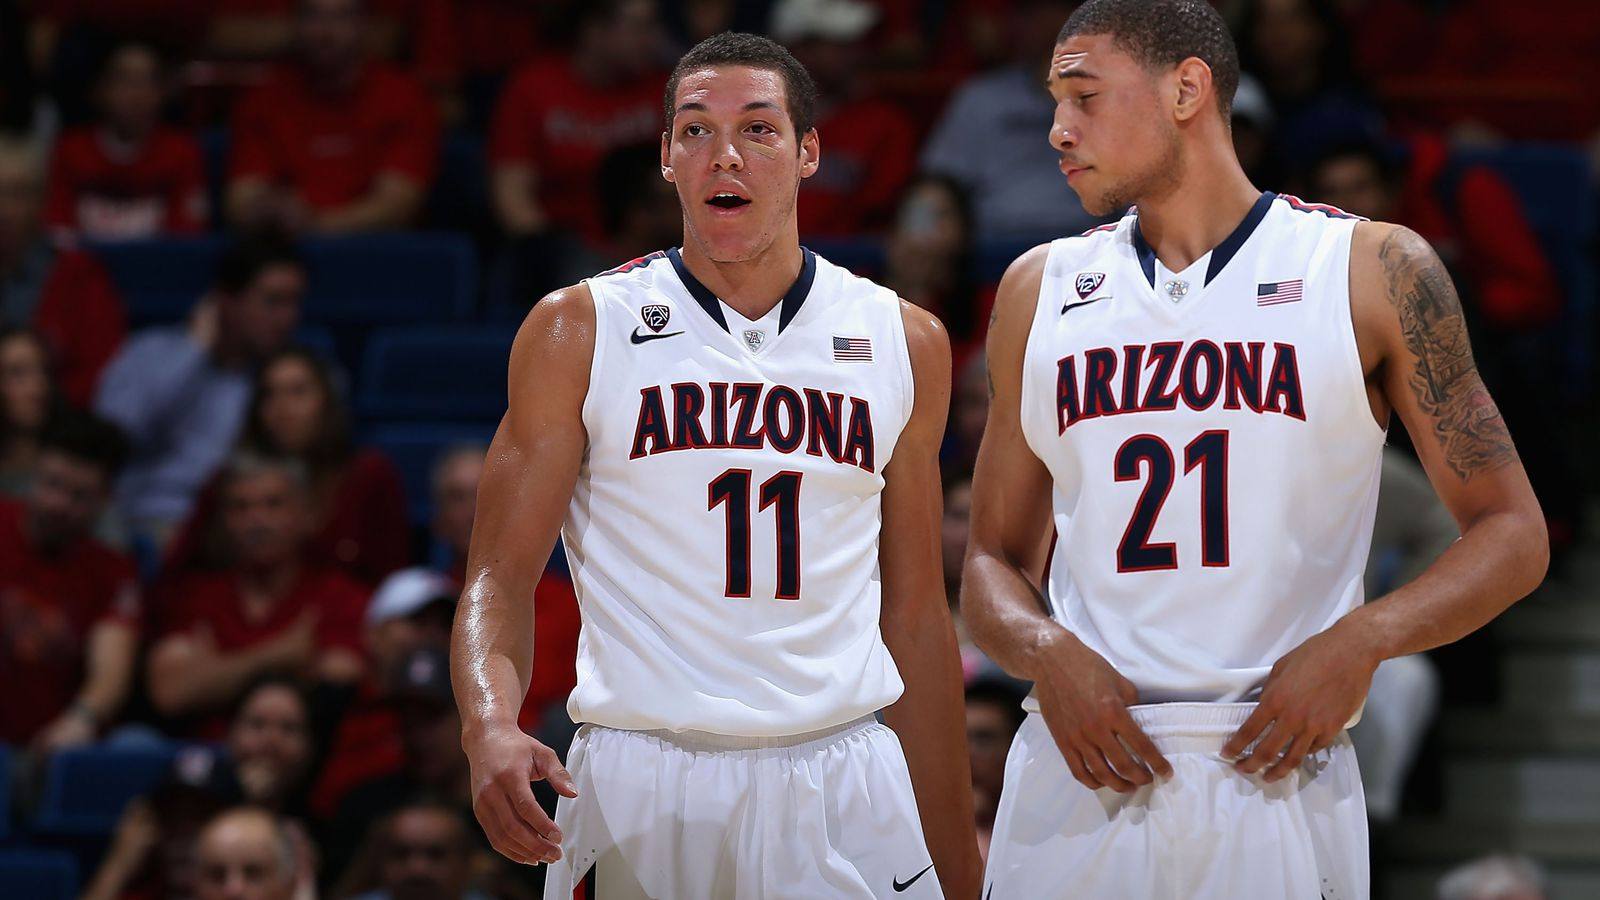 Espn2 On Dish >> Arizona vs. ASU basketball schedule: TV time, radio info, watch online - Pacific Takes